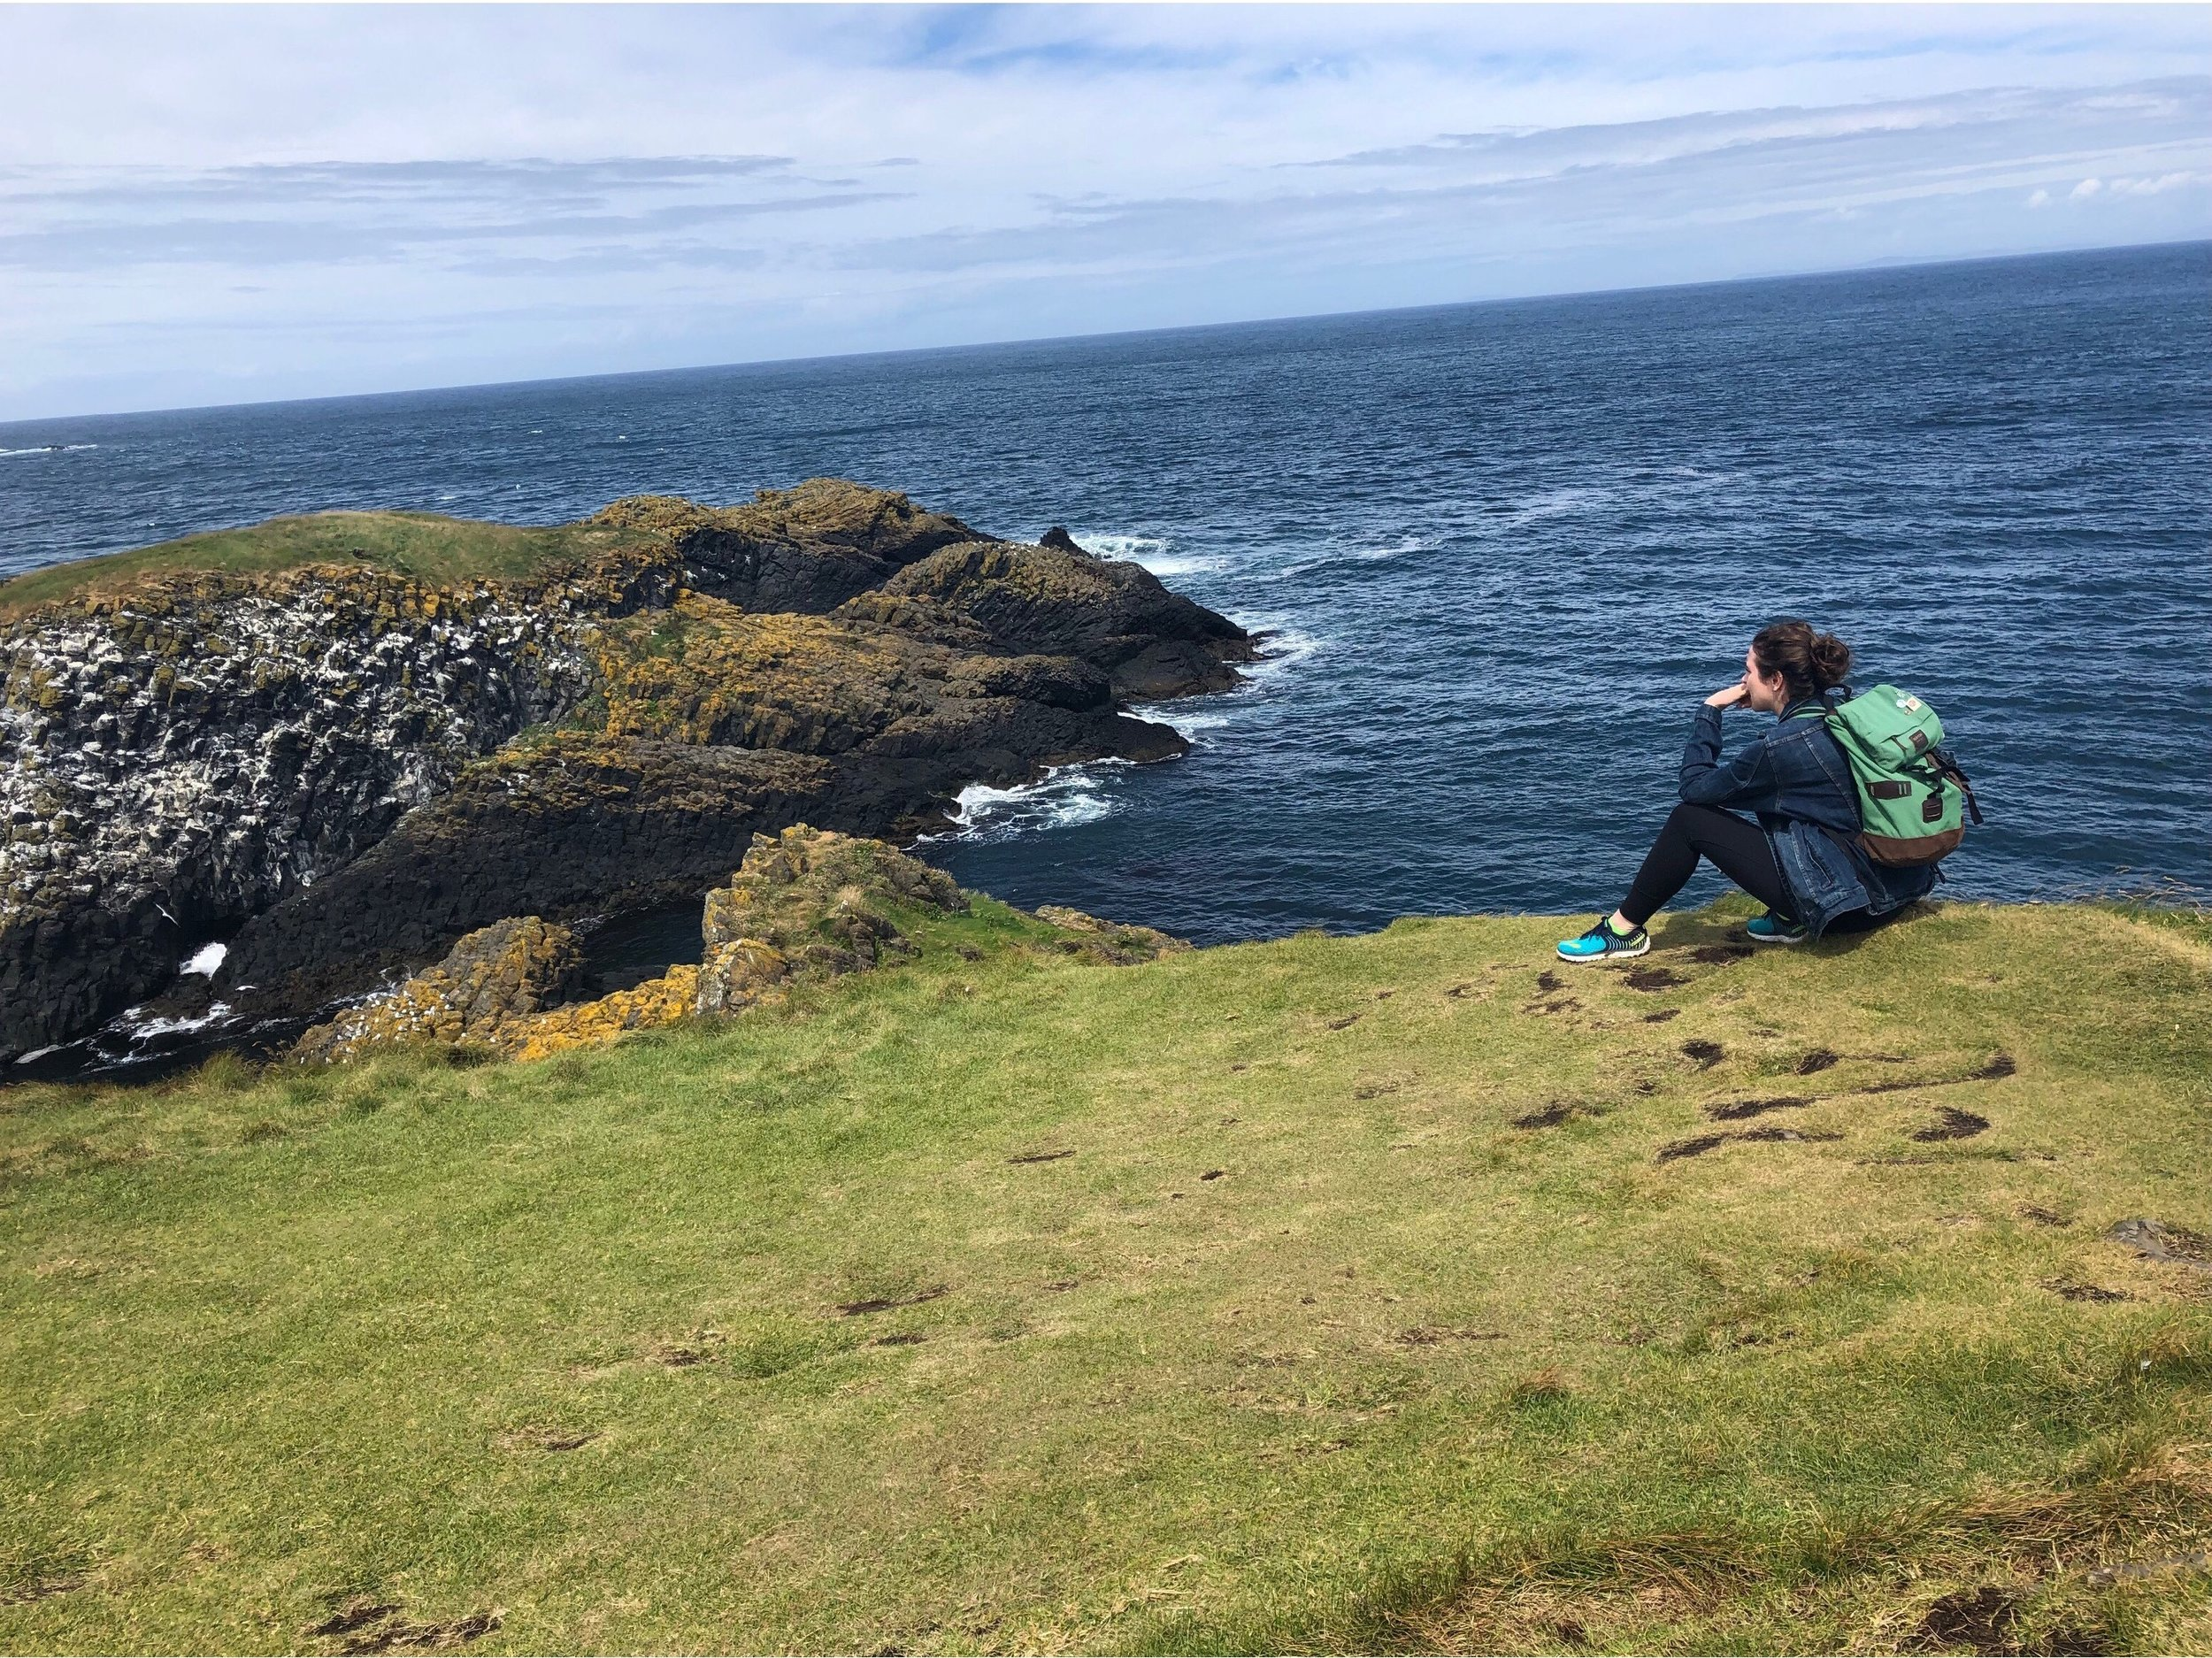 Sitting on a cliff by the sea in Northern Ireland. Photo Credit: Russ, 2018